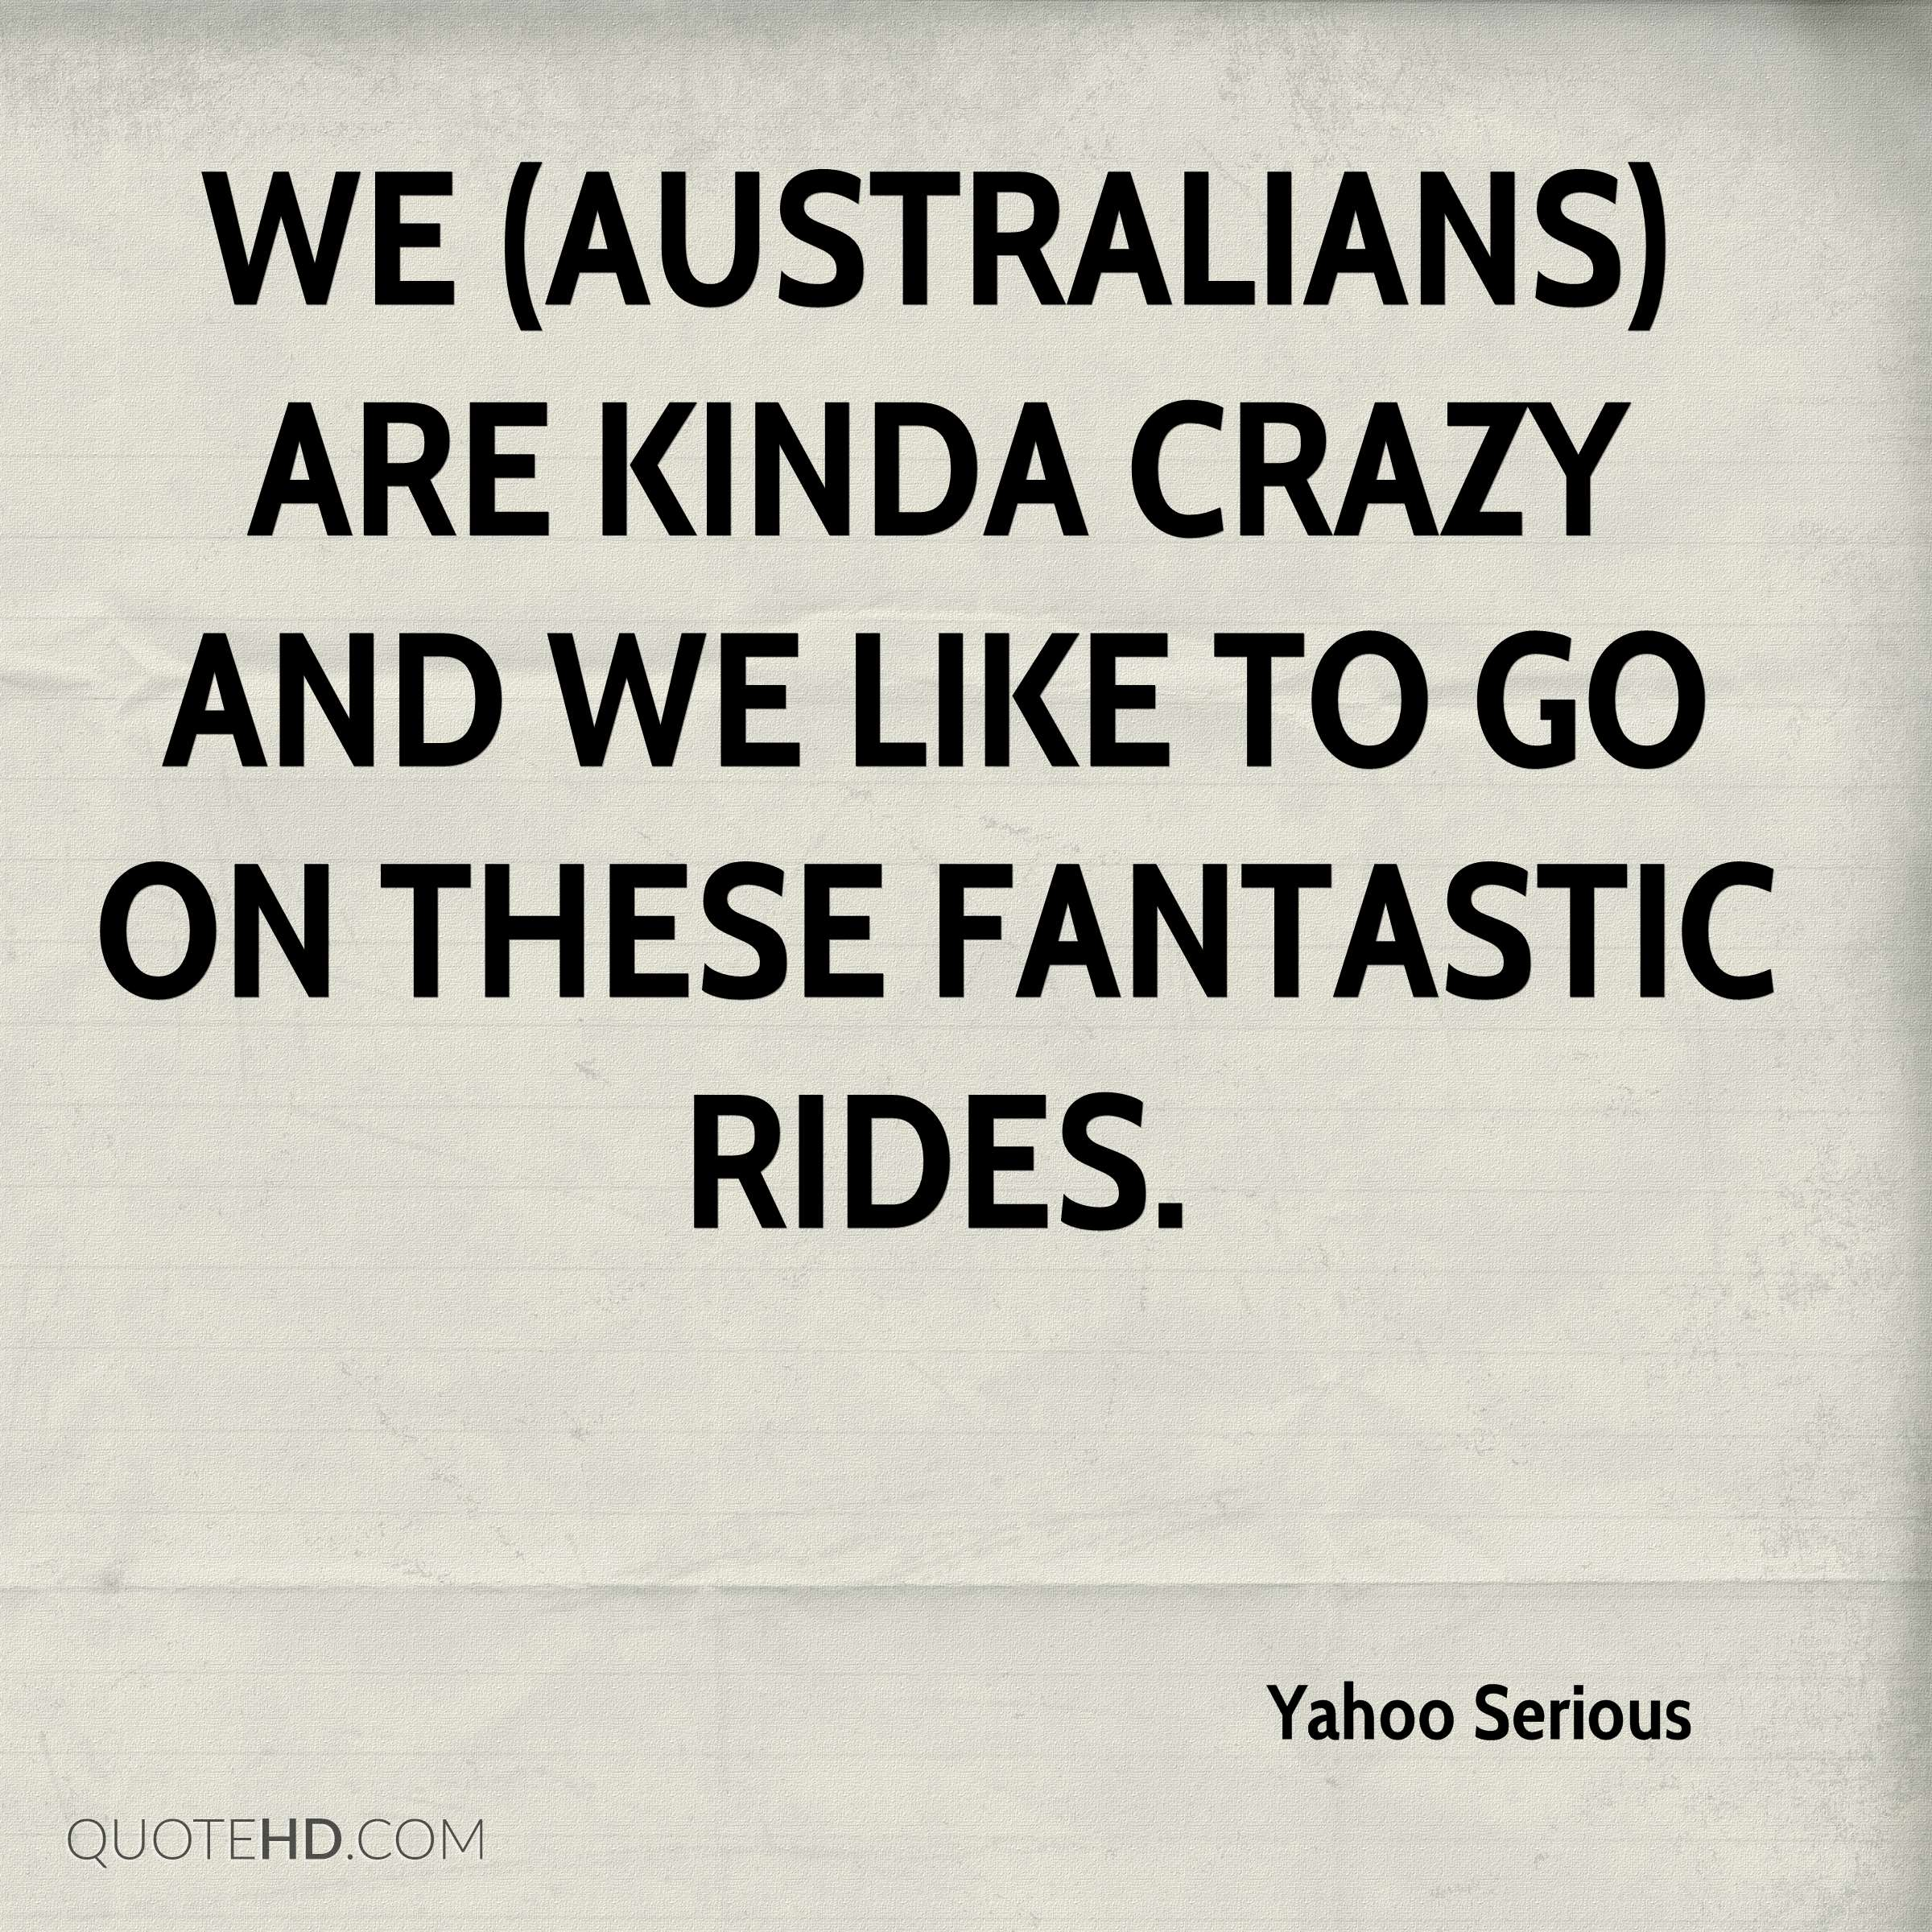 We (Australians) are kinda crazy and we like to go on these fantastic rides.